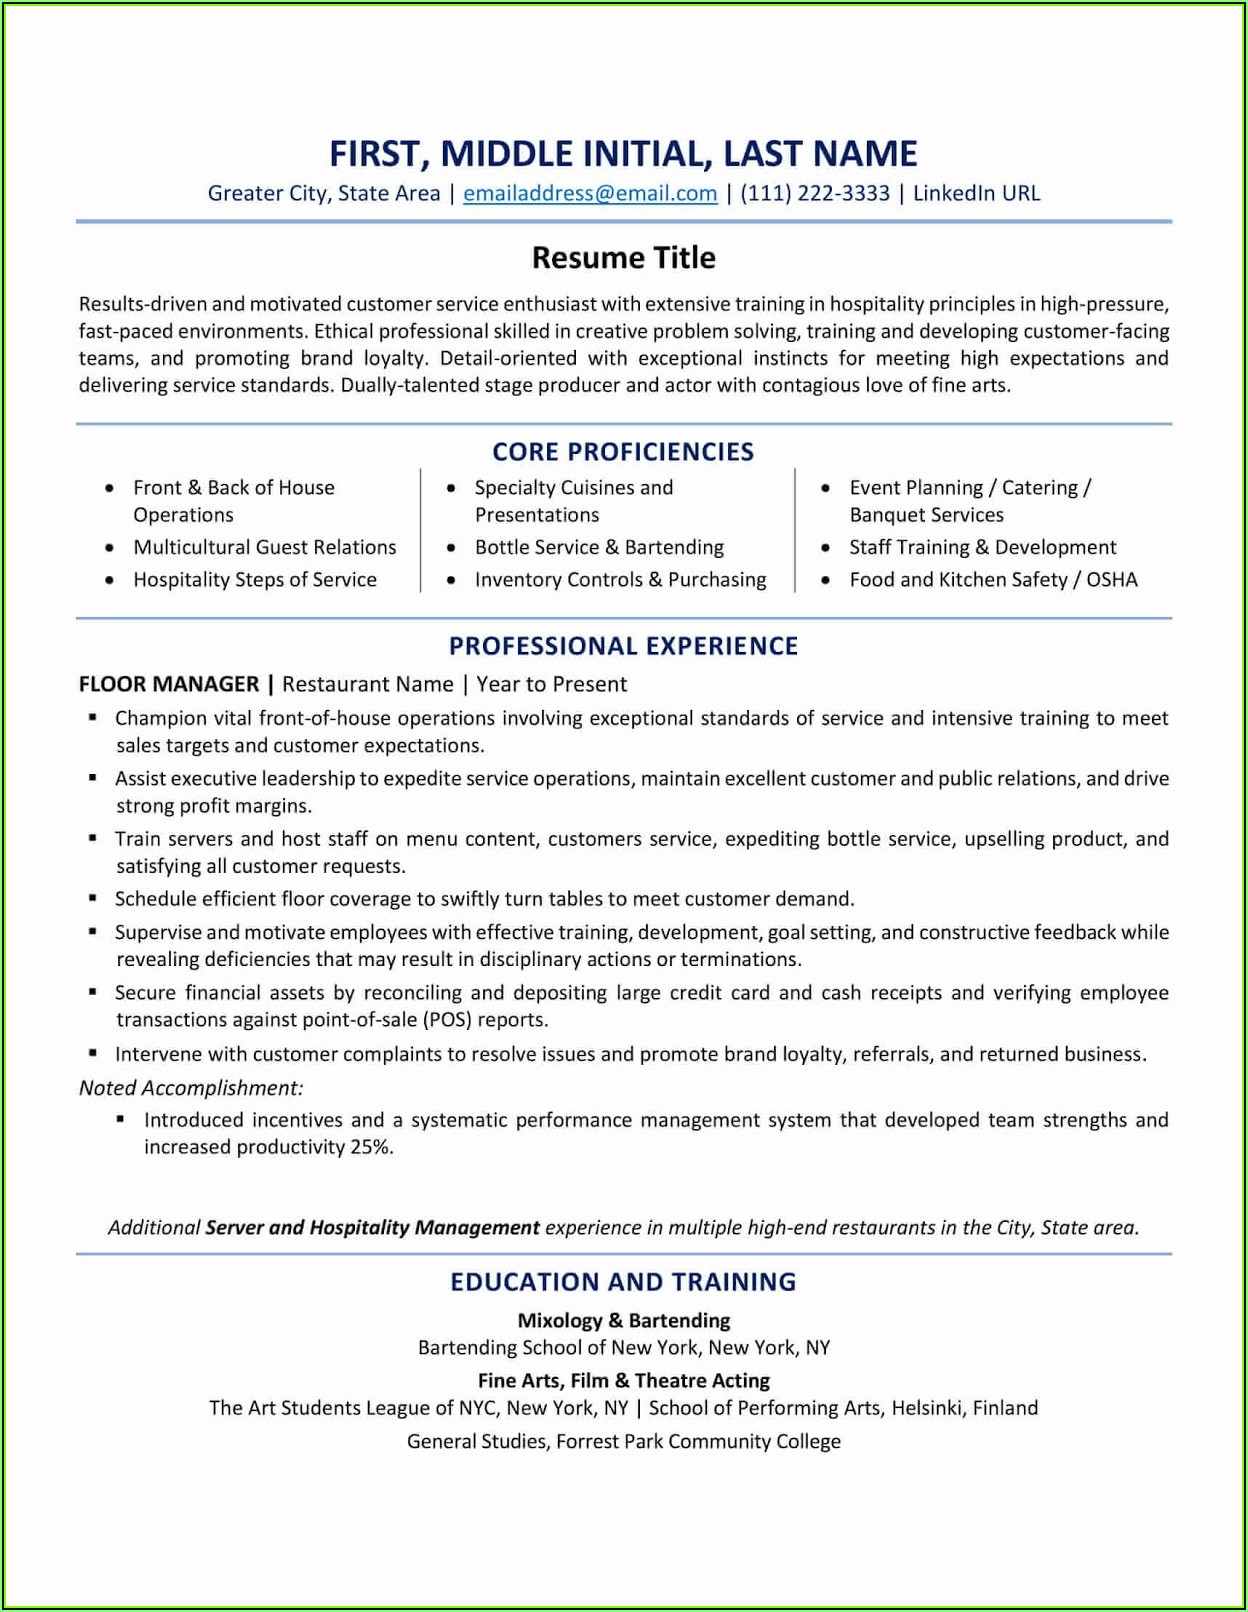 Skills Based Resume Template Canada